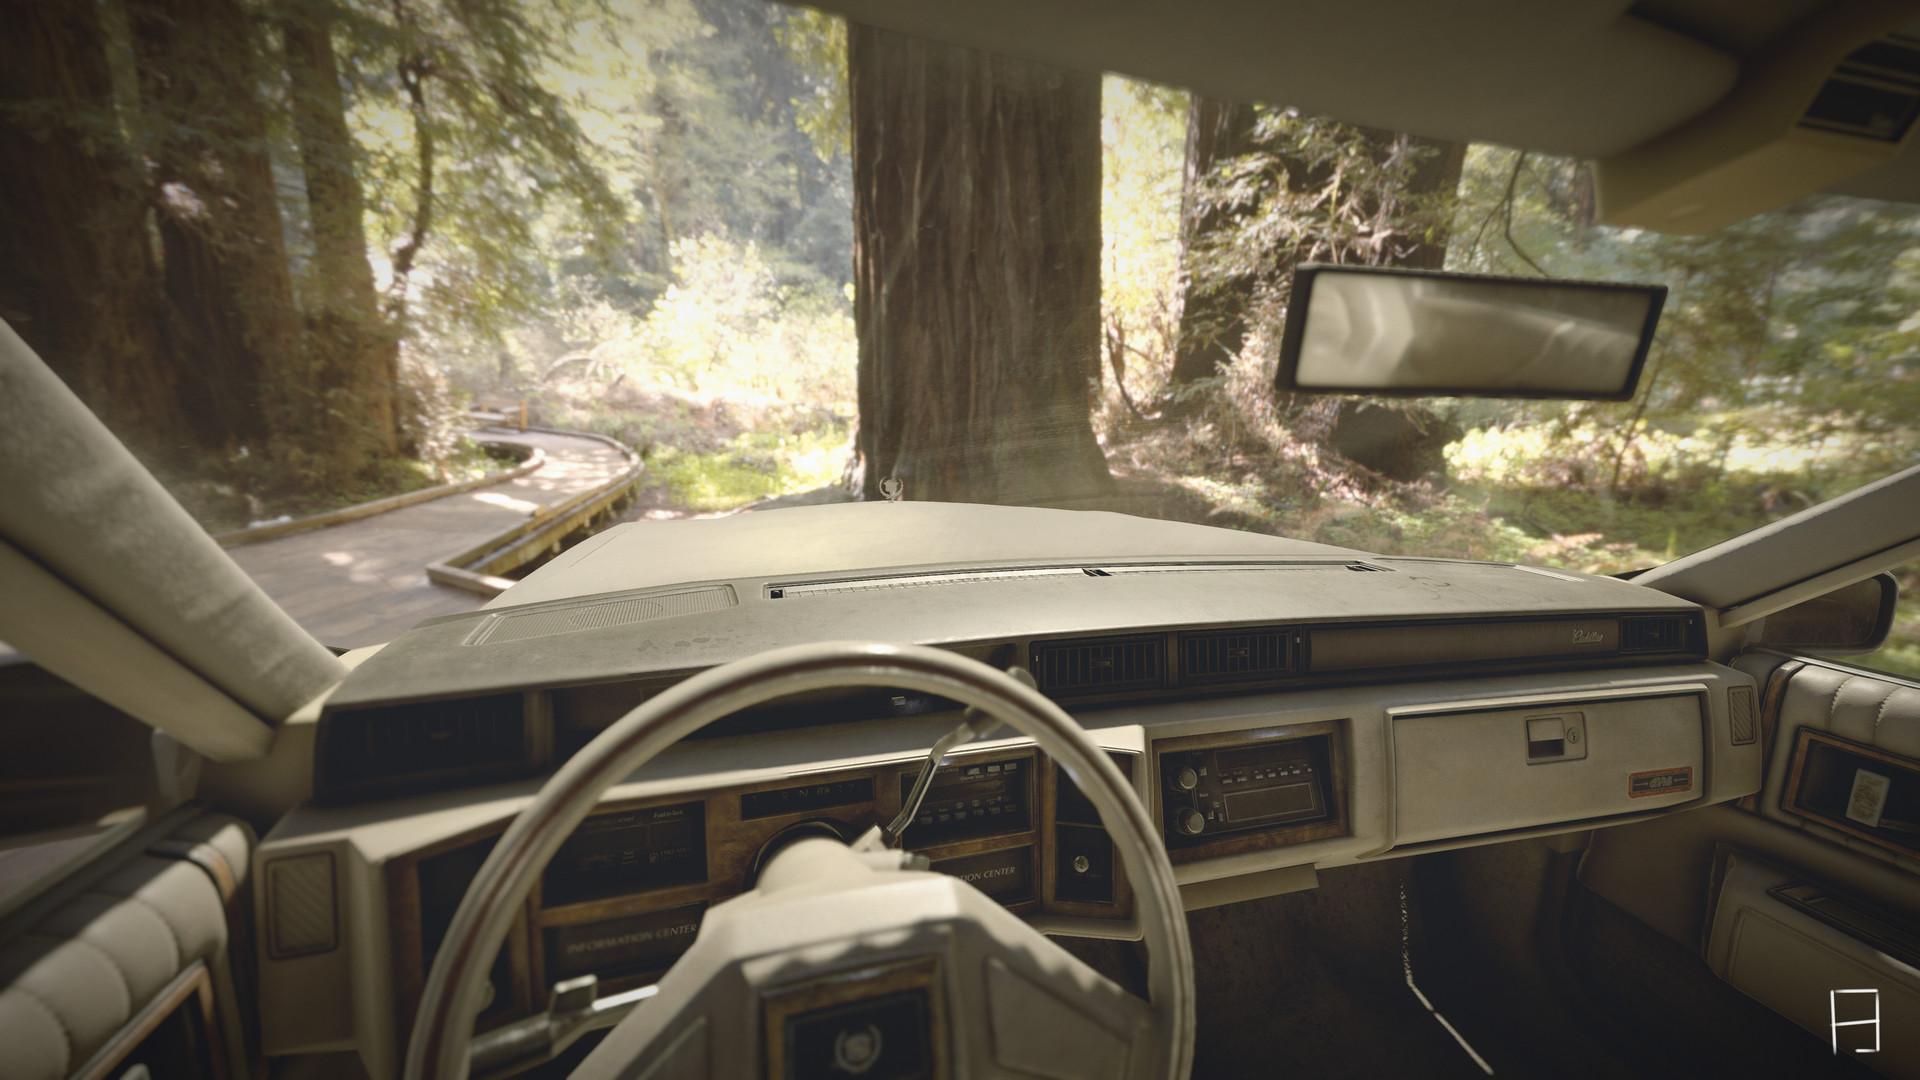 ArtStation - 1986 Cadillac DeVille for Unity 2017 3 VR Experience